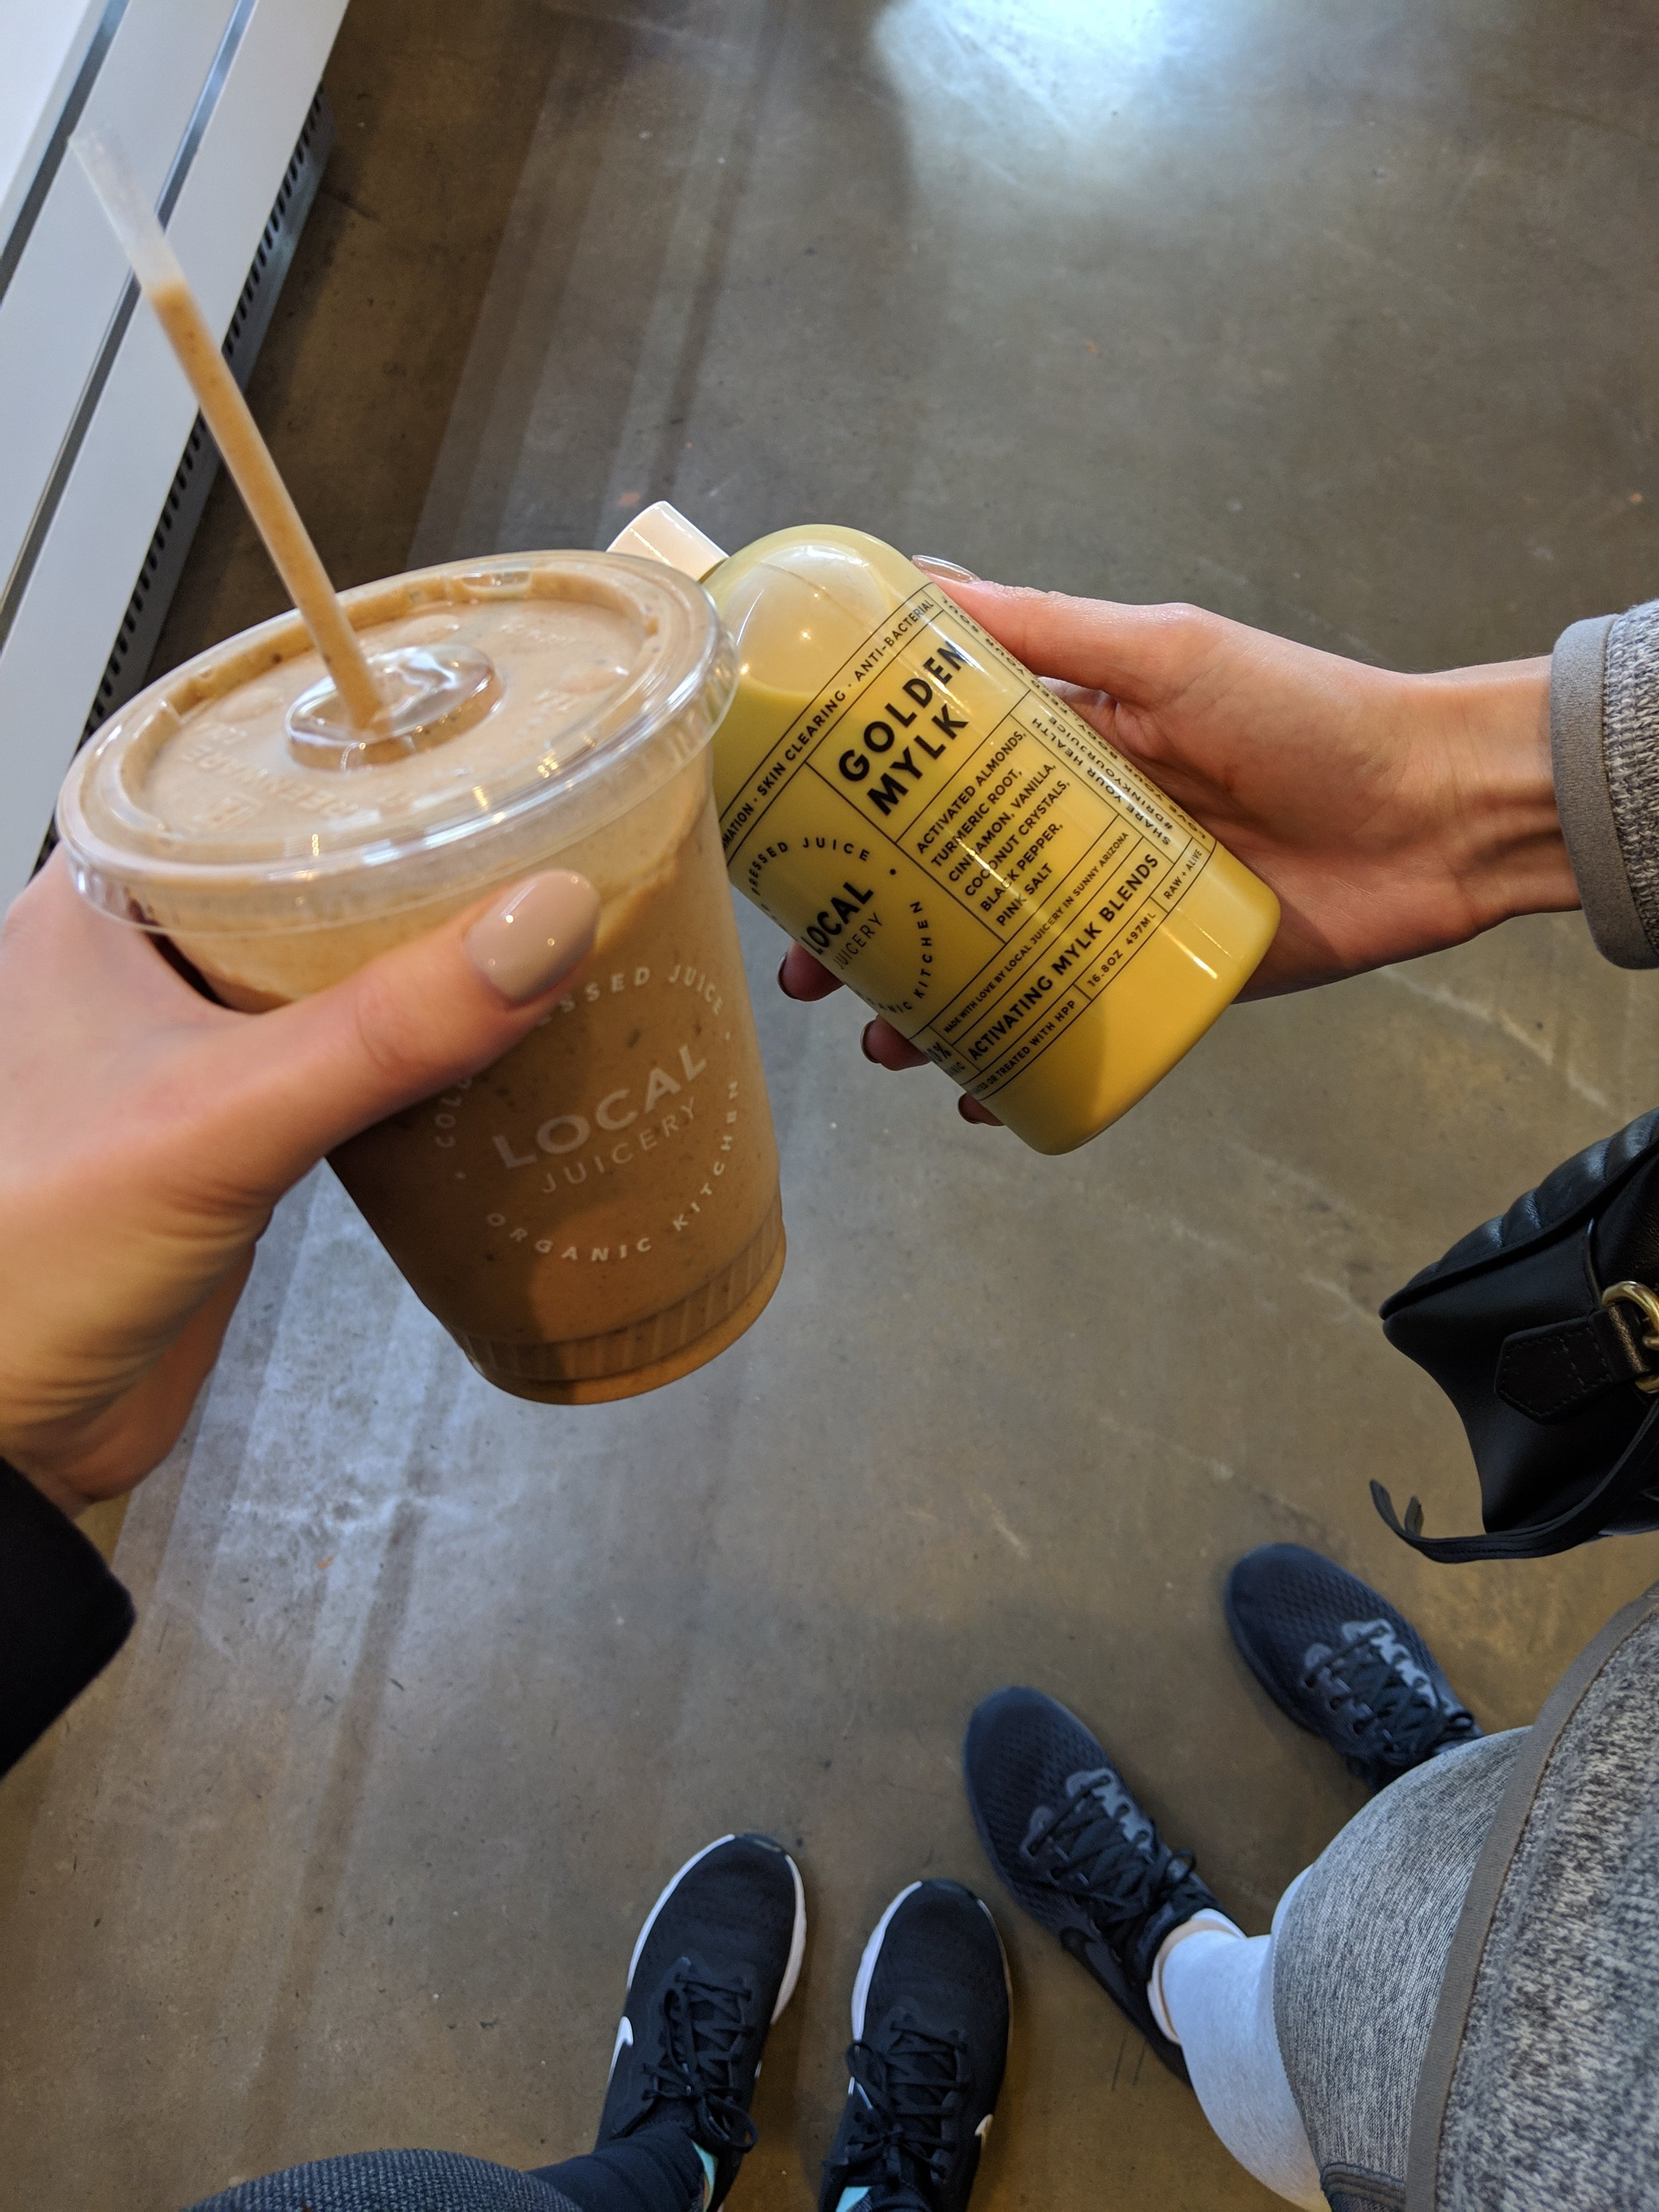 Having a smoothie and golden mylk at Local Juicery in Sedona, AZ | Watson & Walls